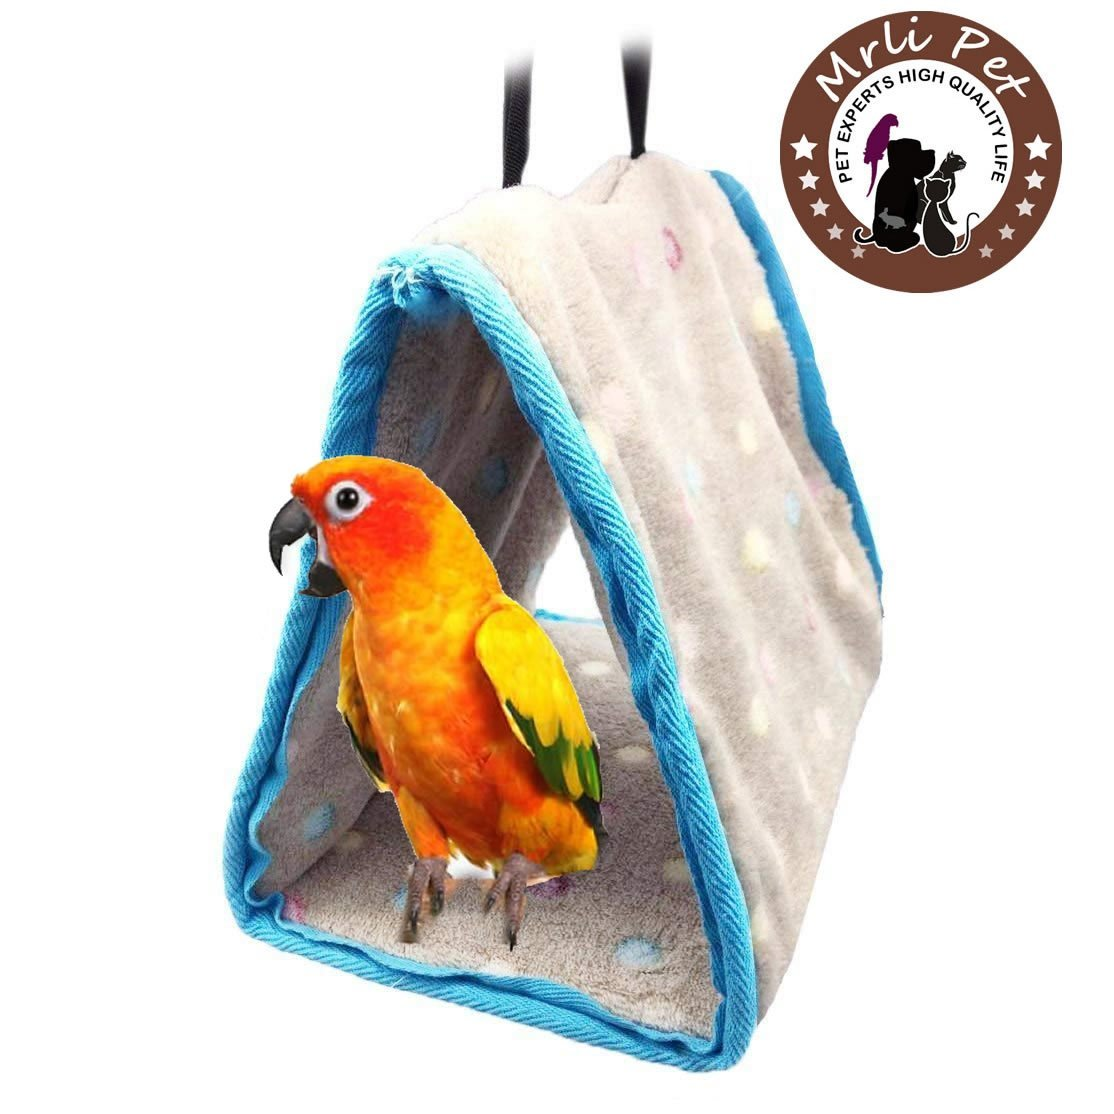 Parrot Perch Tents, Mrlipet Winter Warm Bird Nest House Plush Hammock Hanging Cave Happy Hut Hideaway for Macaw African Grey Amazon Eclectu Parakeet Cockatiels Cockatoo Conure Lovebird Cage Toys Mrli Pet